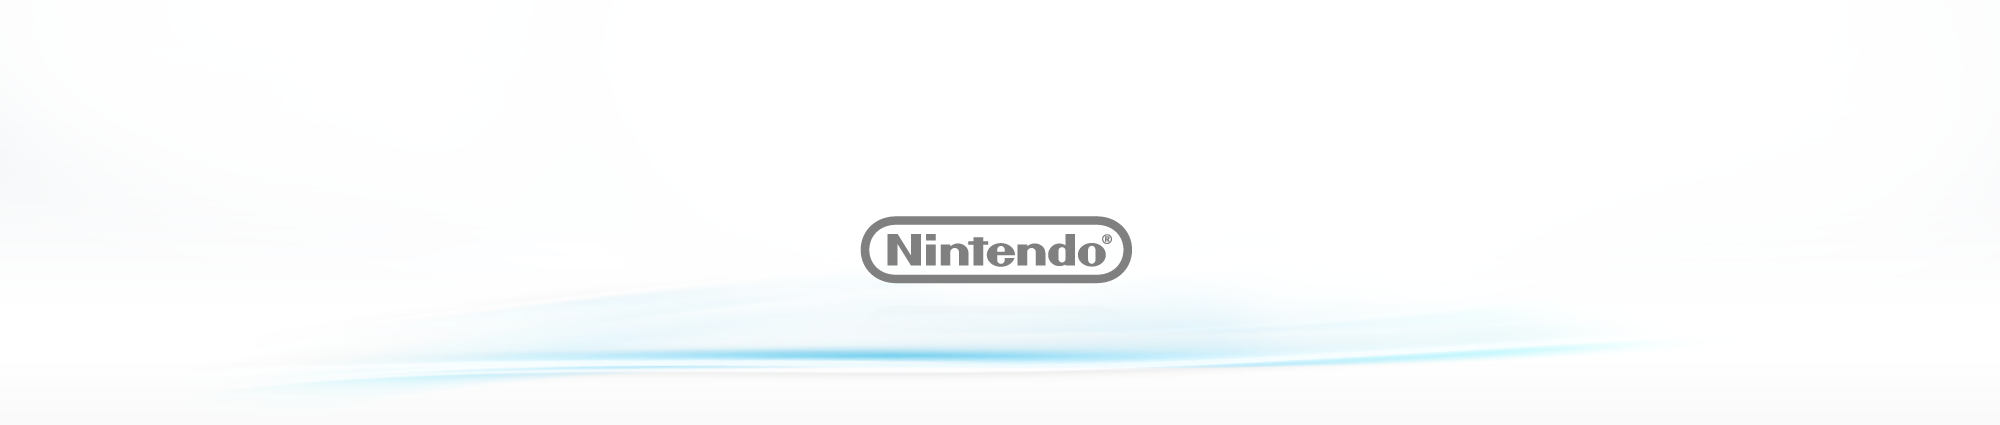 How can I add My Nintendo points that I've earned to my point total?